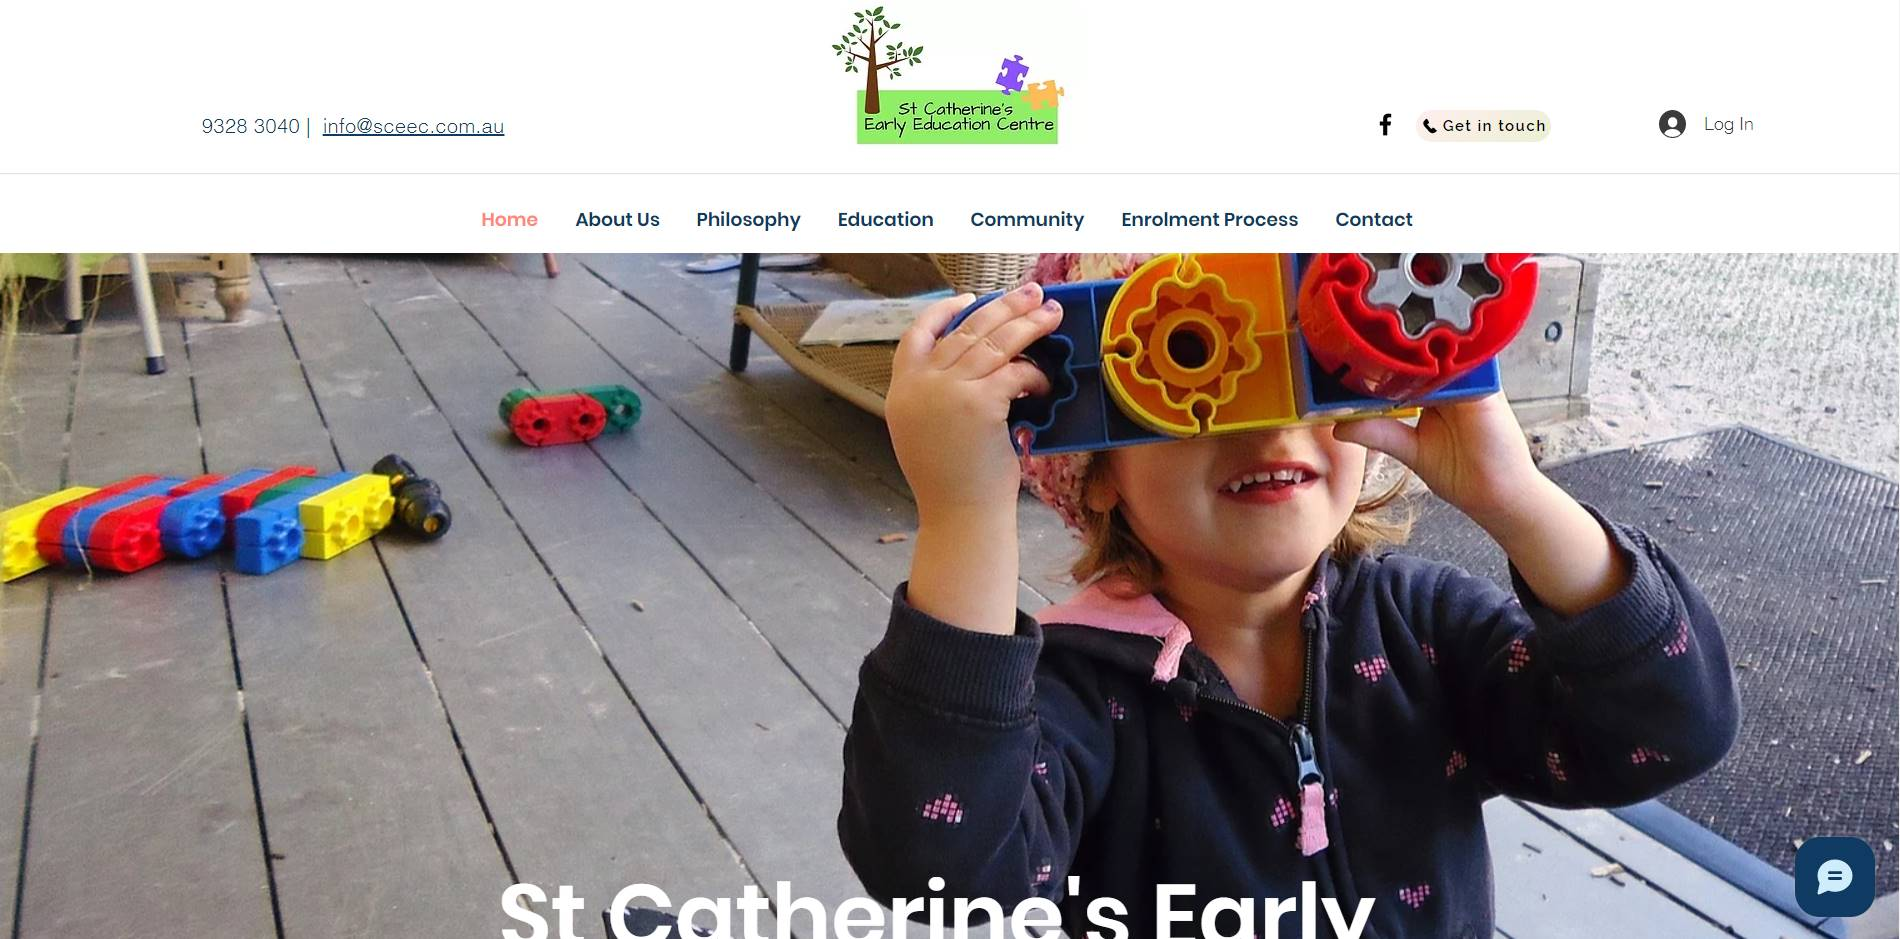 st catherine's early education centre